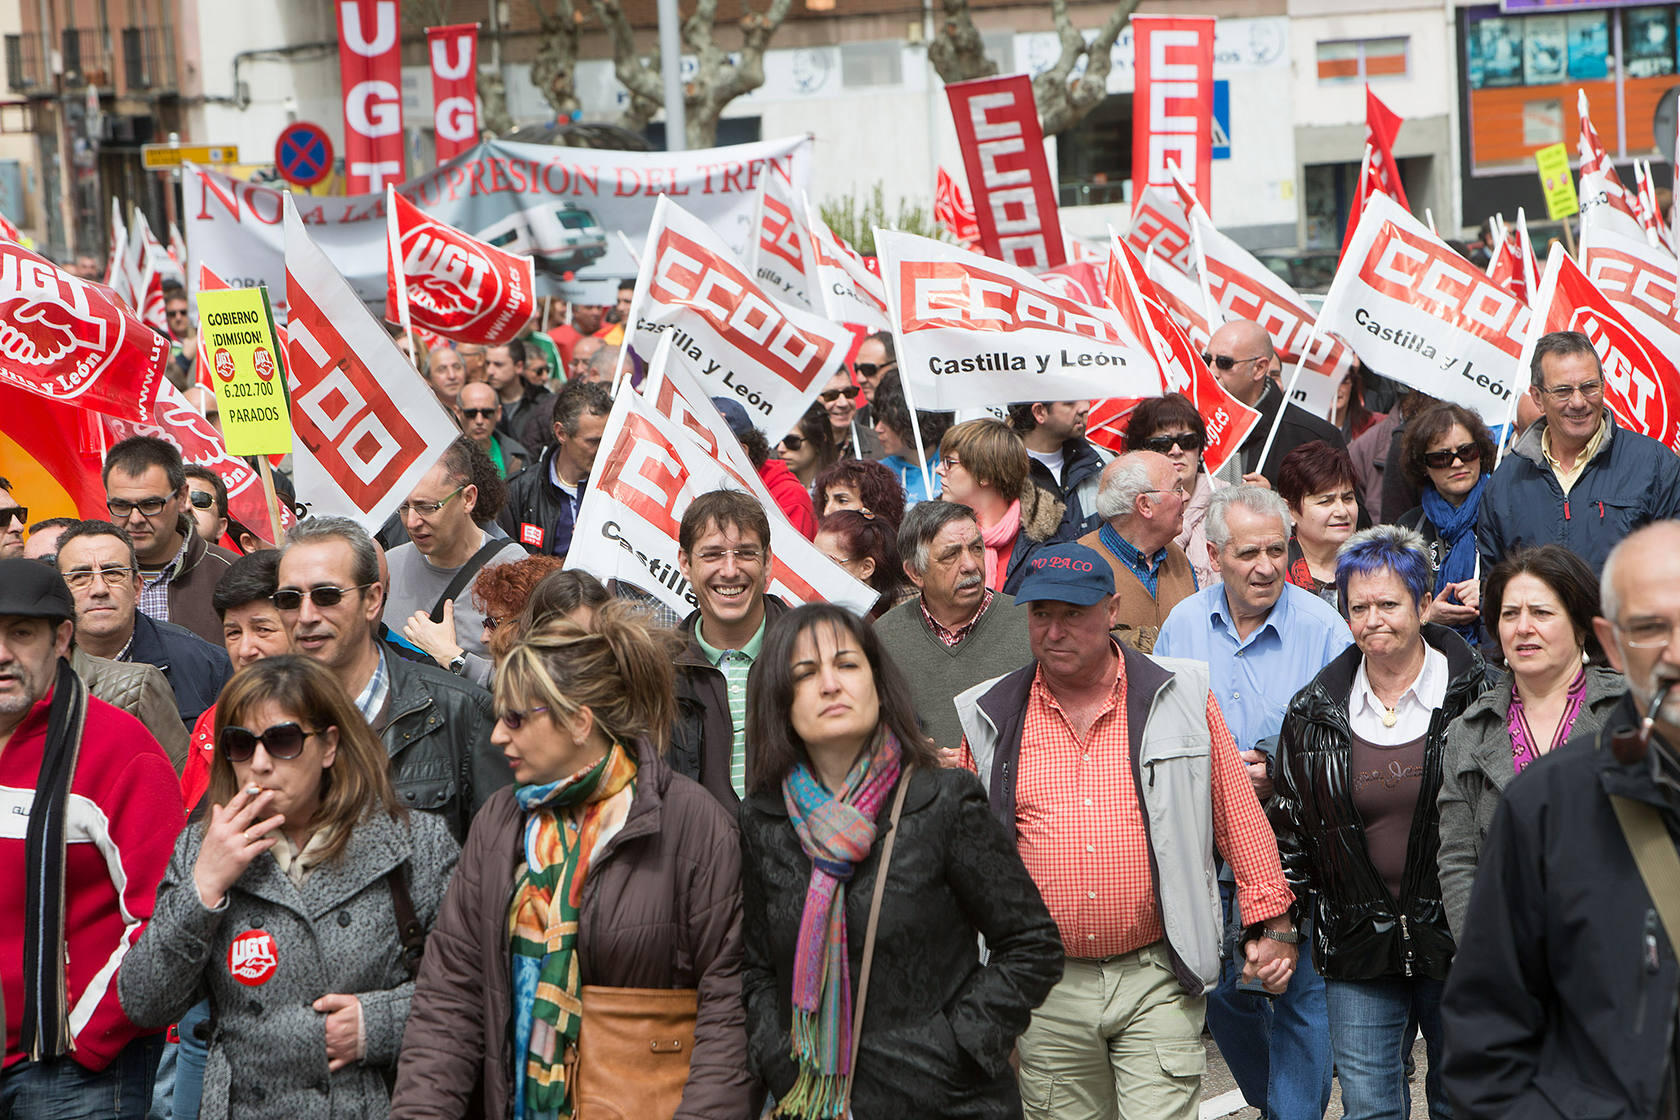 Las manifestaciones del 1 de Mayo en Castilla y Le&oacute;n